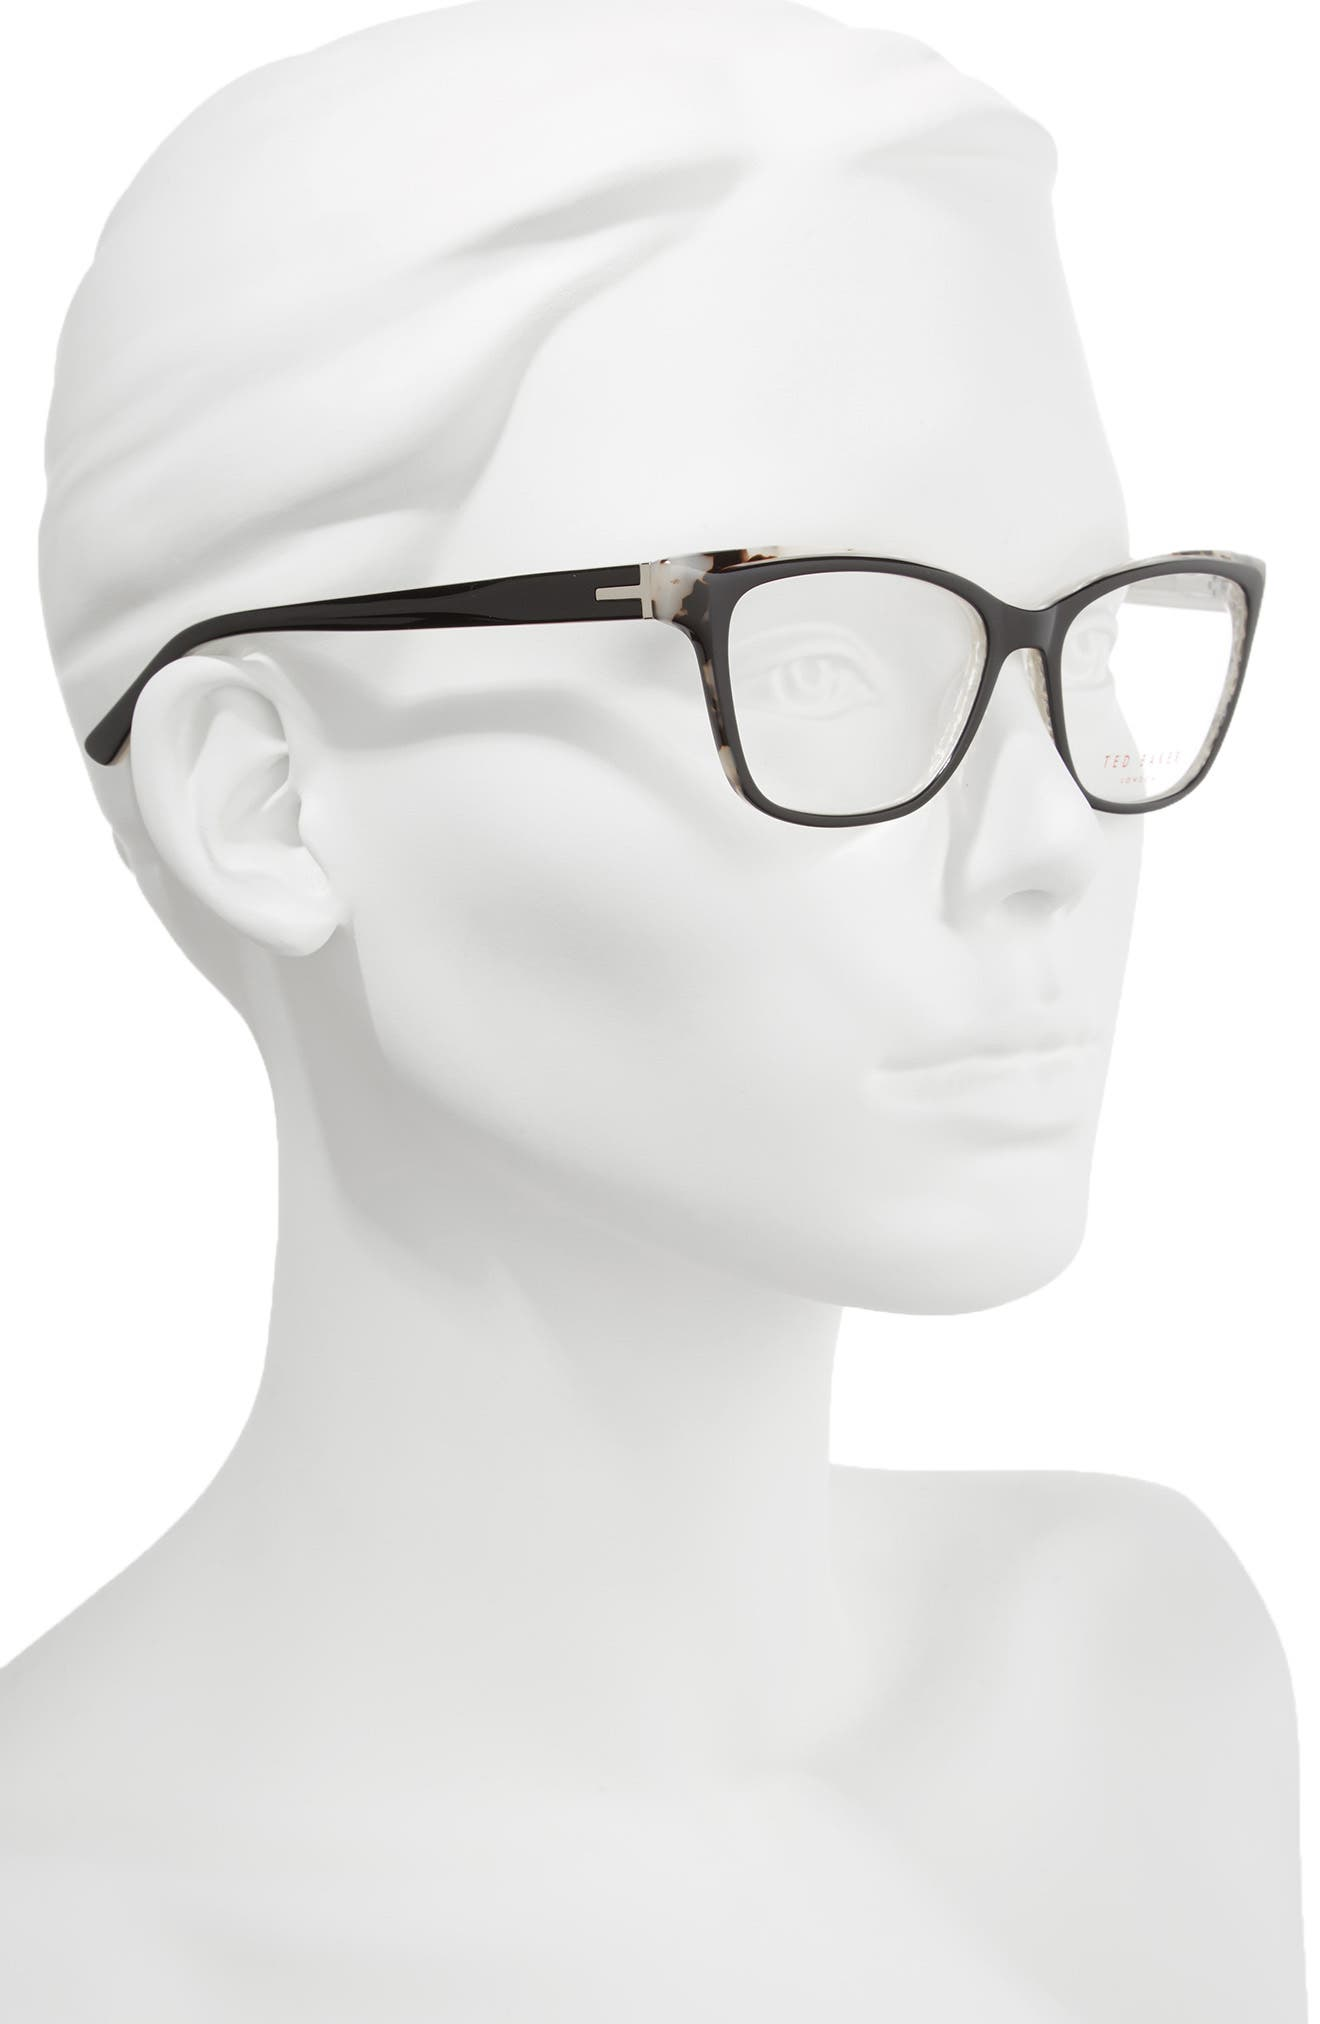 53mm Optical Cat Eye Glasses,                             Alternate thumbnail 3, color,